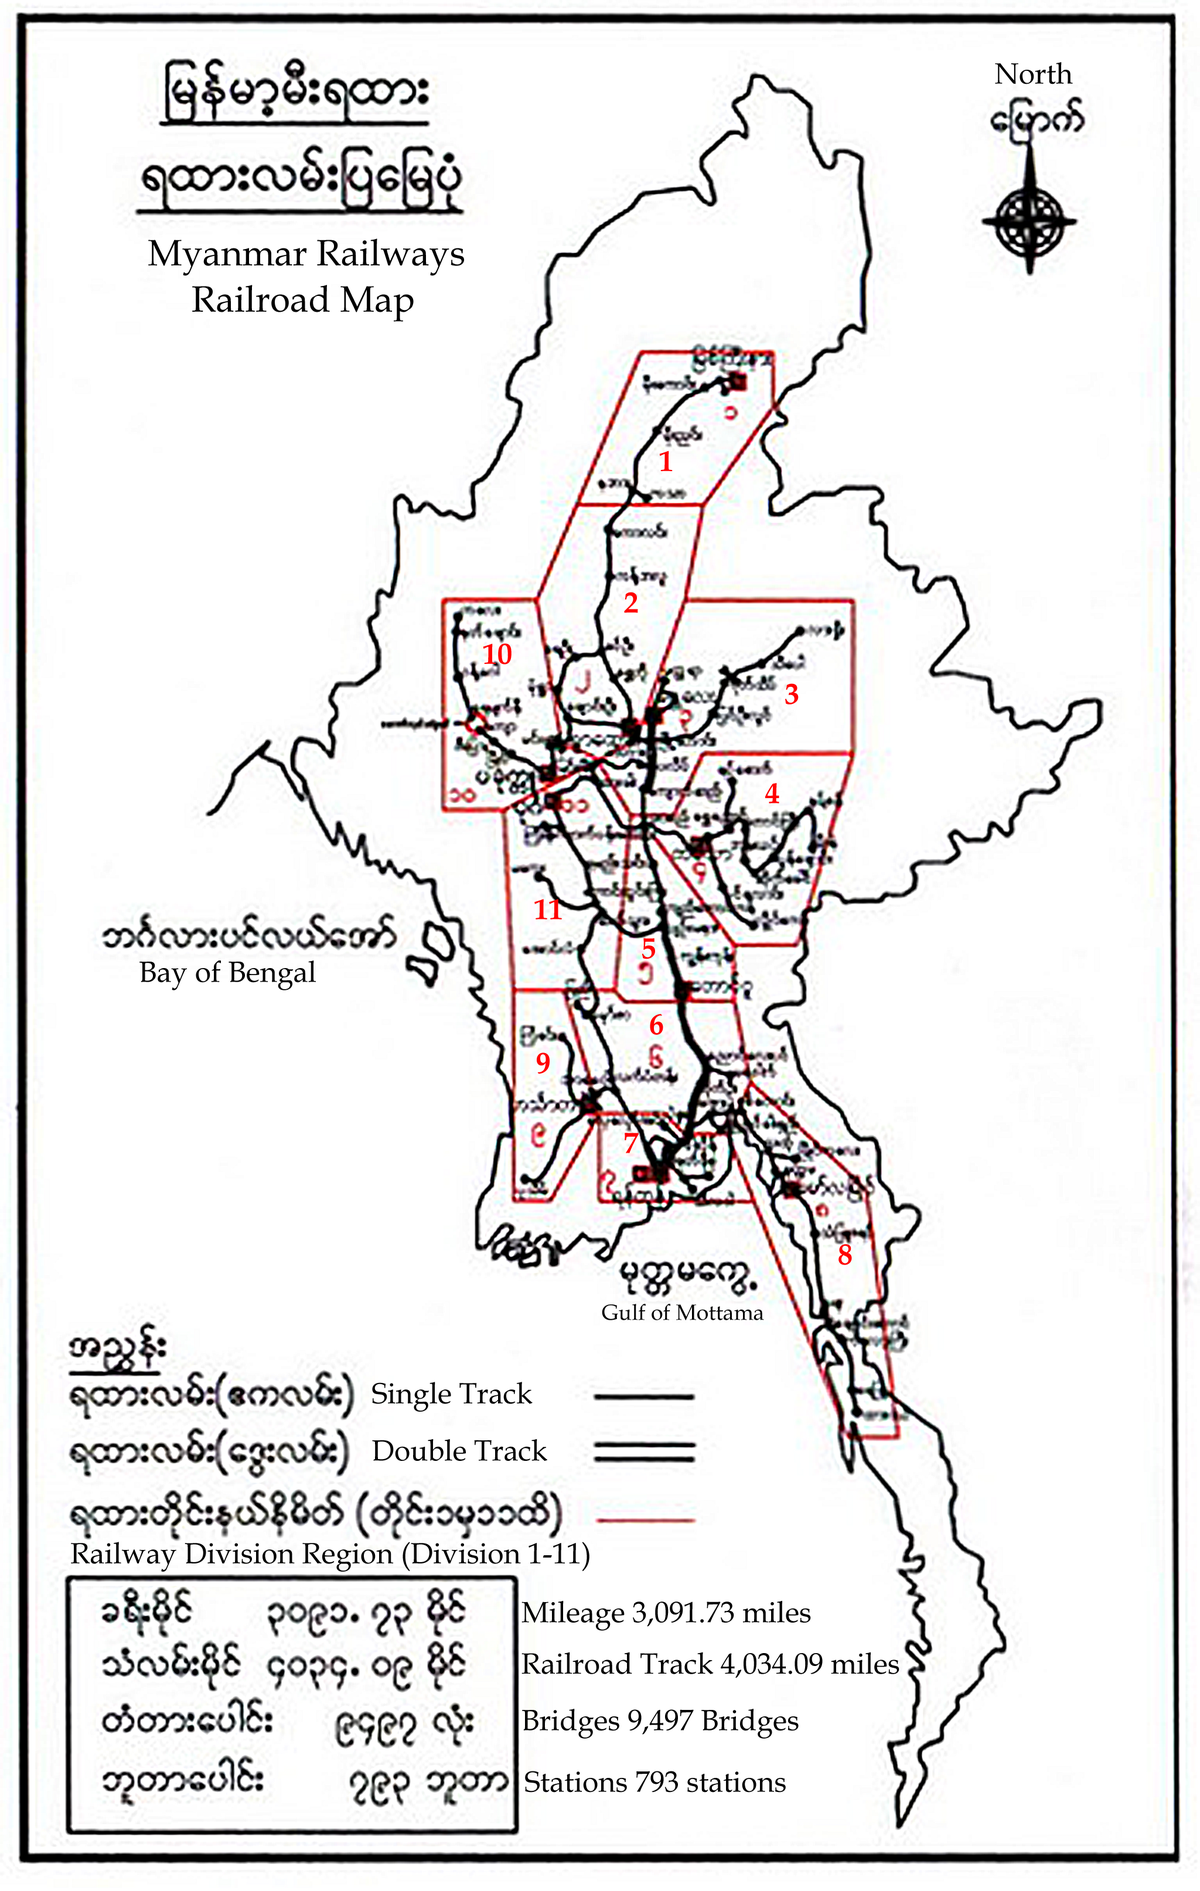 Rail transport in Myanmar - Wikipedia